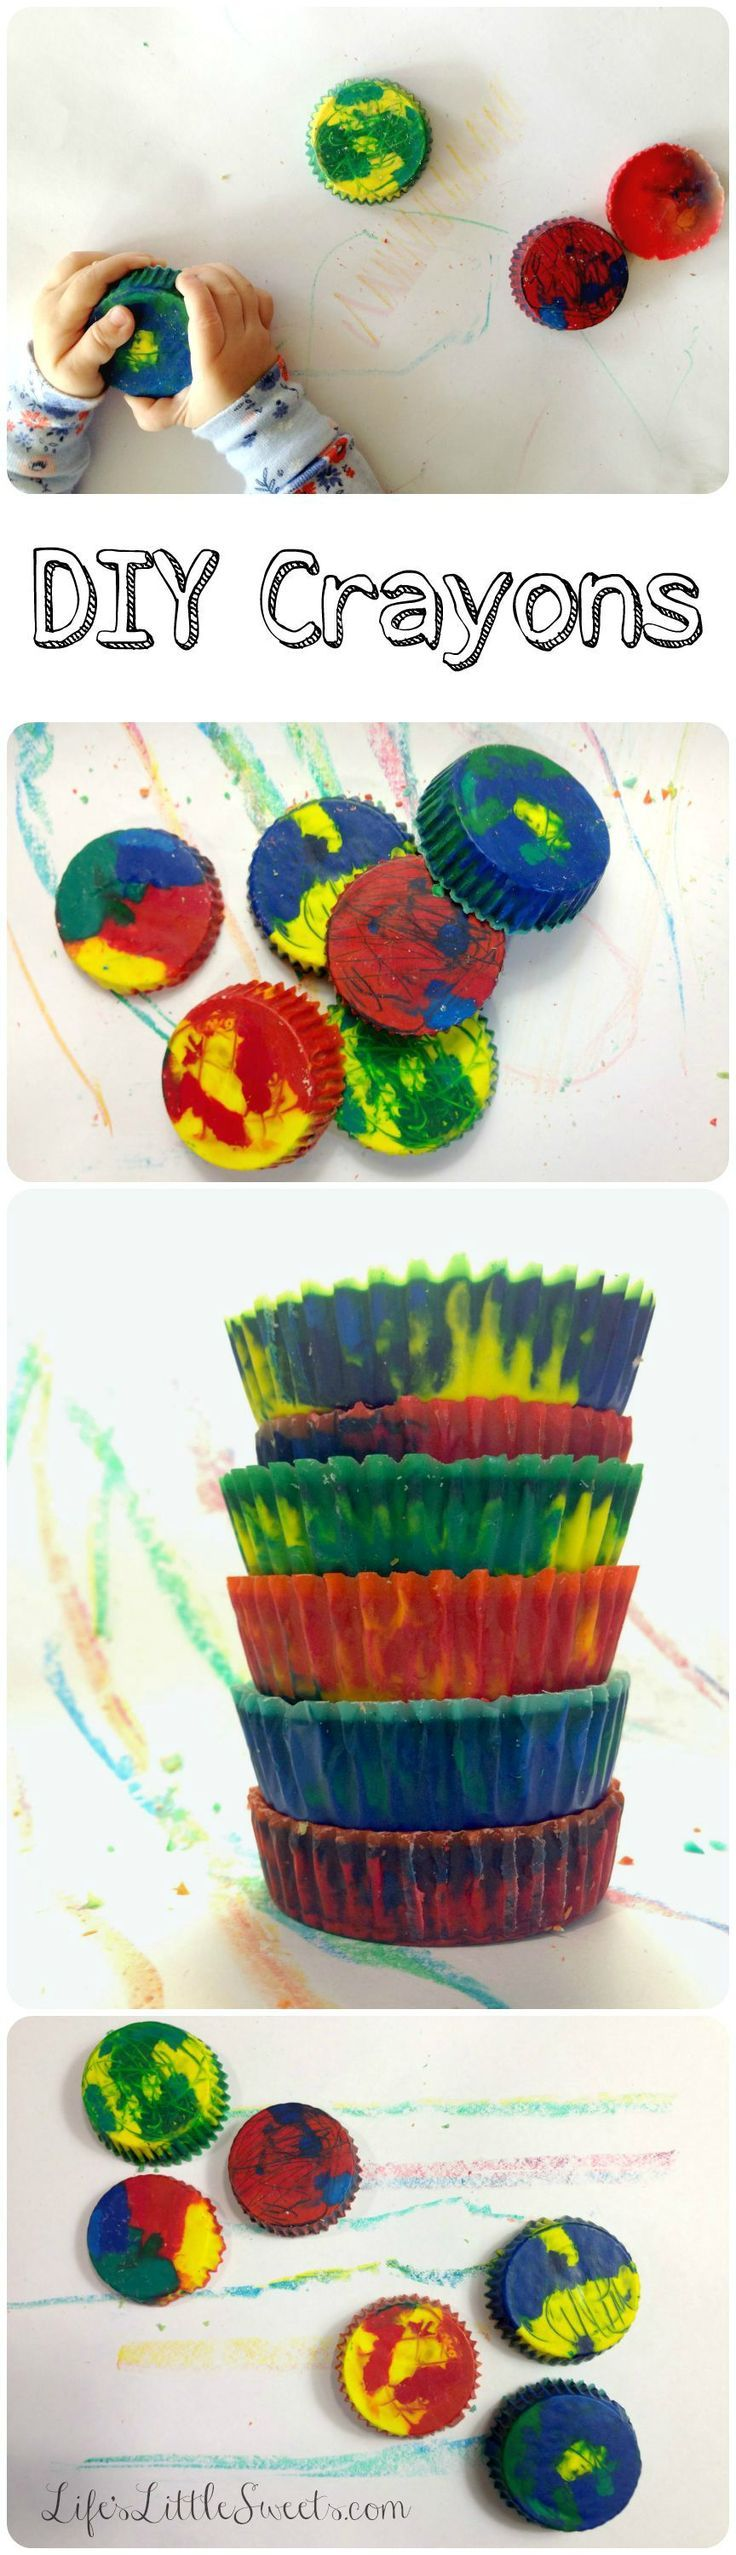 DIY Crayons: Make new colorful crayons by melting your broken crayons! Enjoy this easy, kid-friendly activity!  #DIY #crayons #crayon #kids #art #kidsactivities #upcycle #recycle #reuse #savemoney #save #lifeslittlesweets